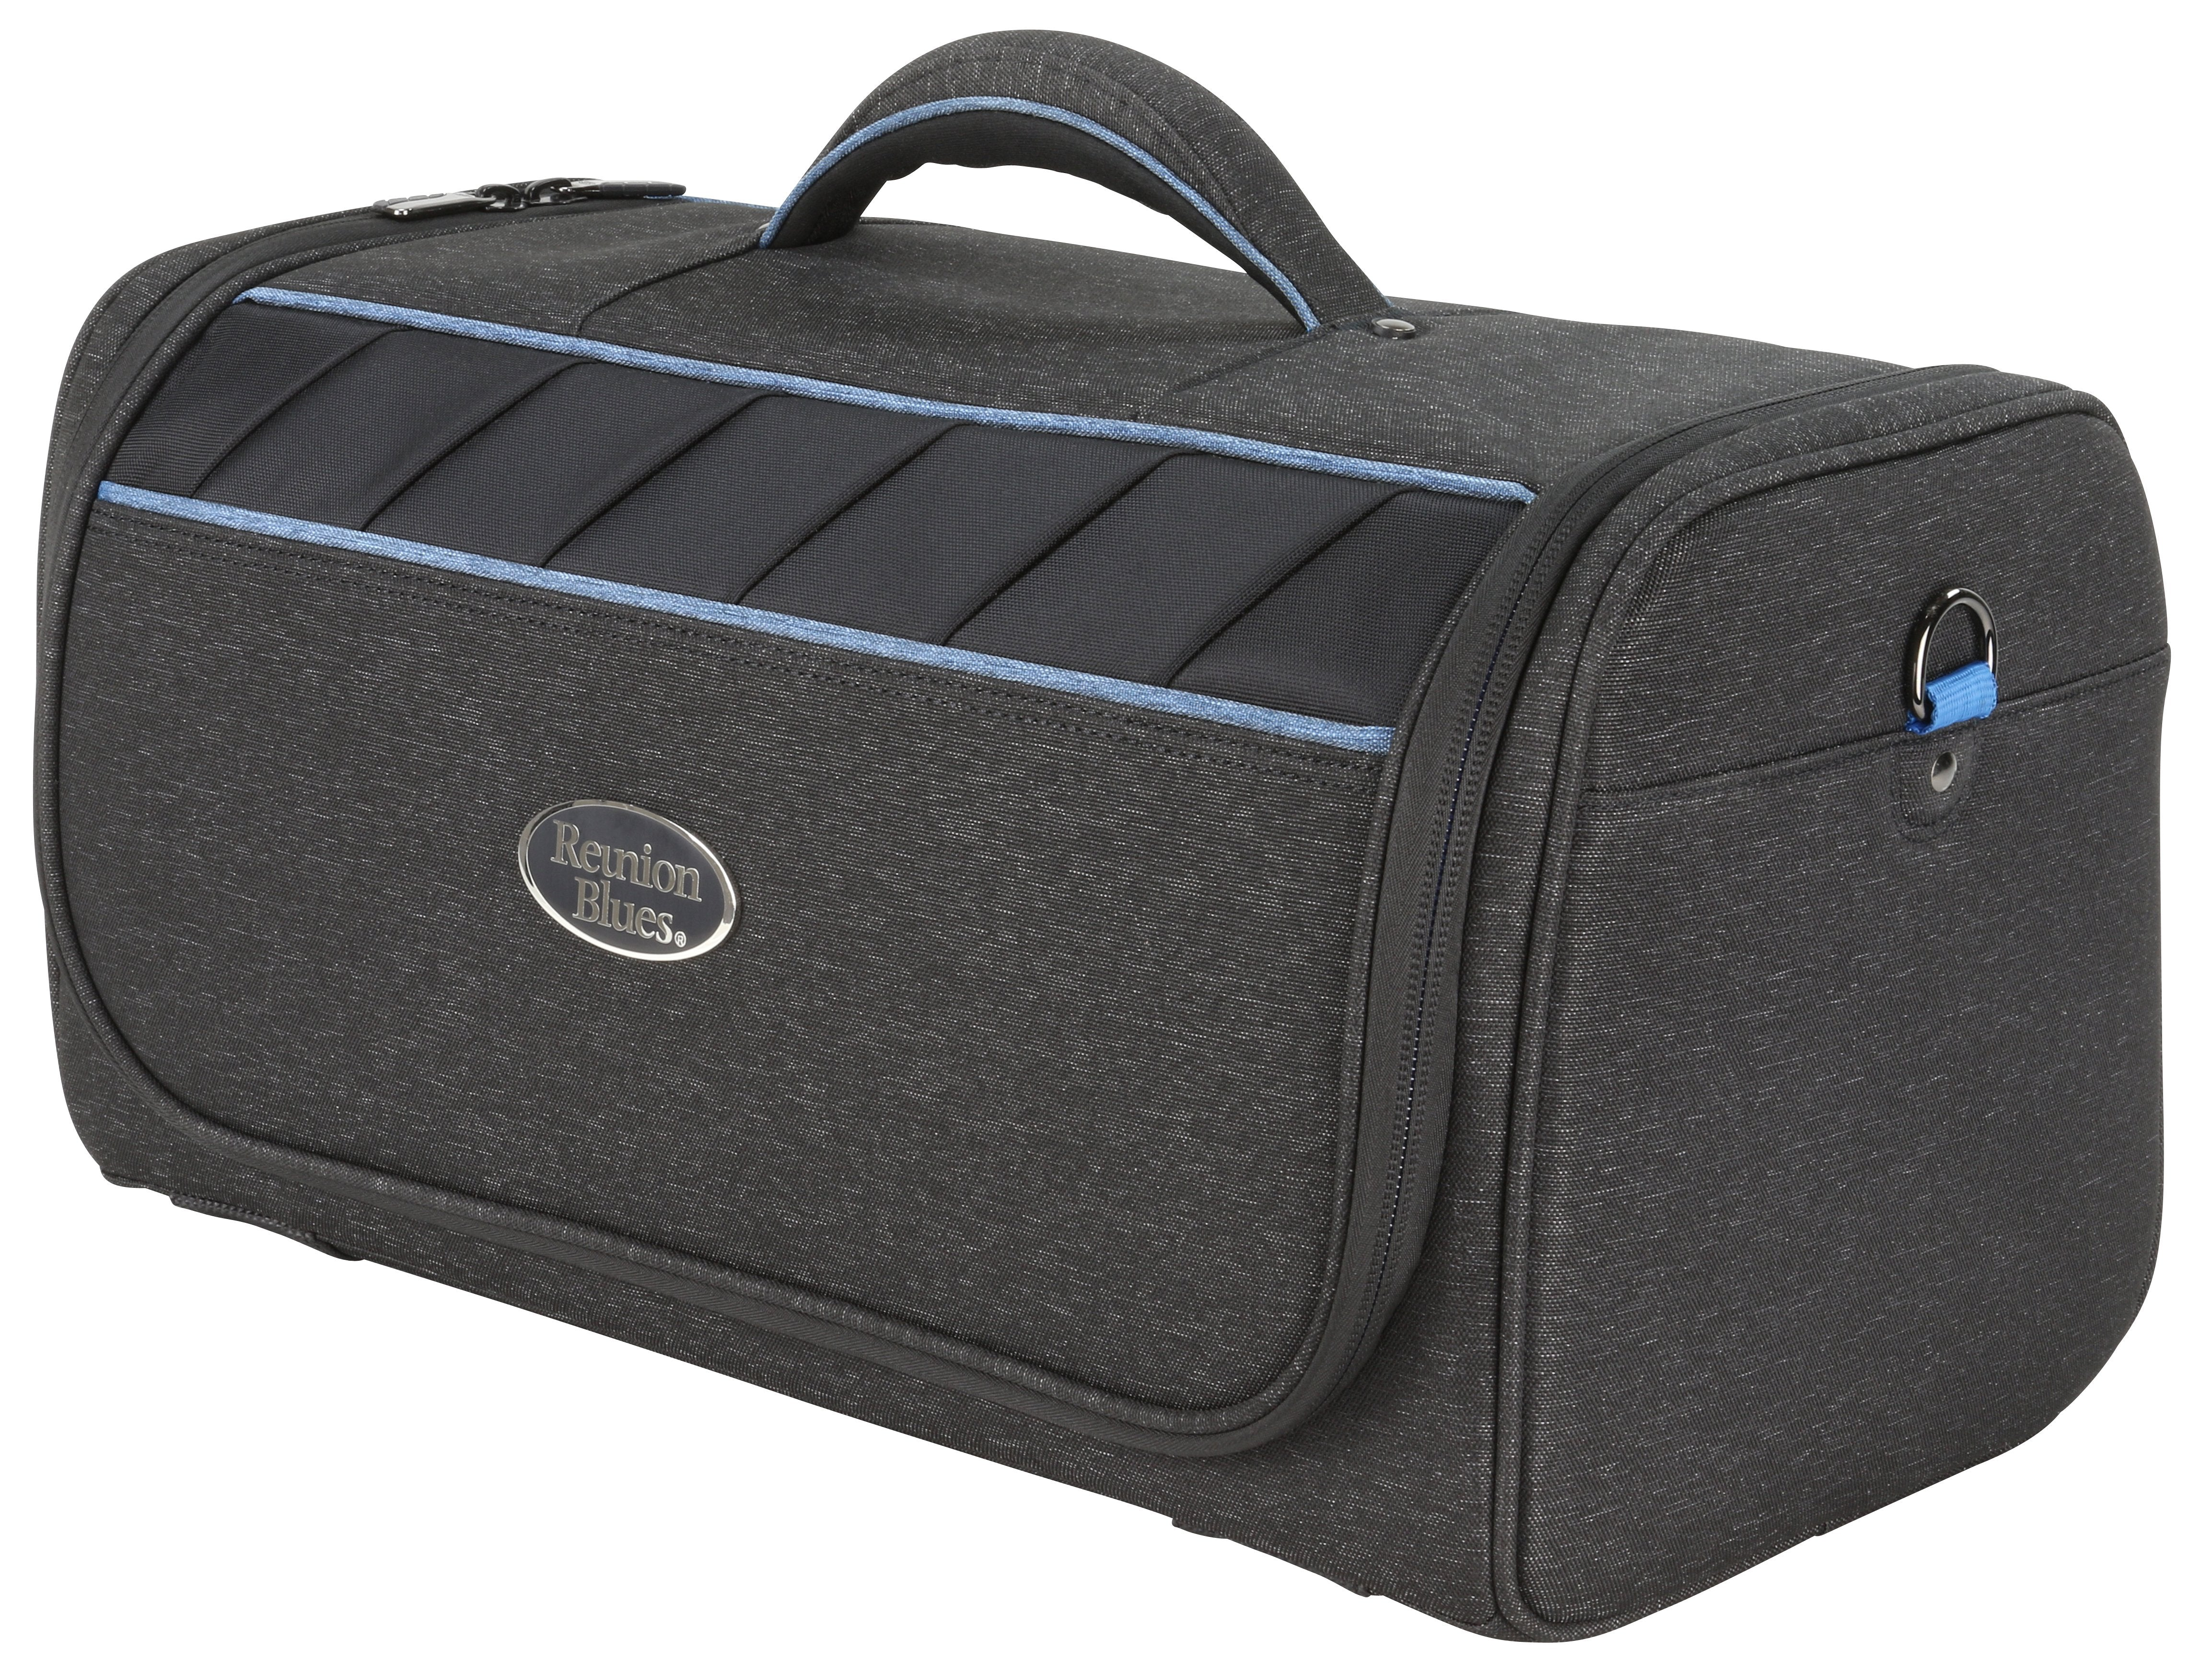 Reunion Blues MPTU 15-34 Luggage-Deluxe Pouch for Tuba